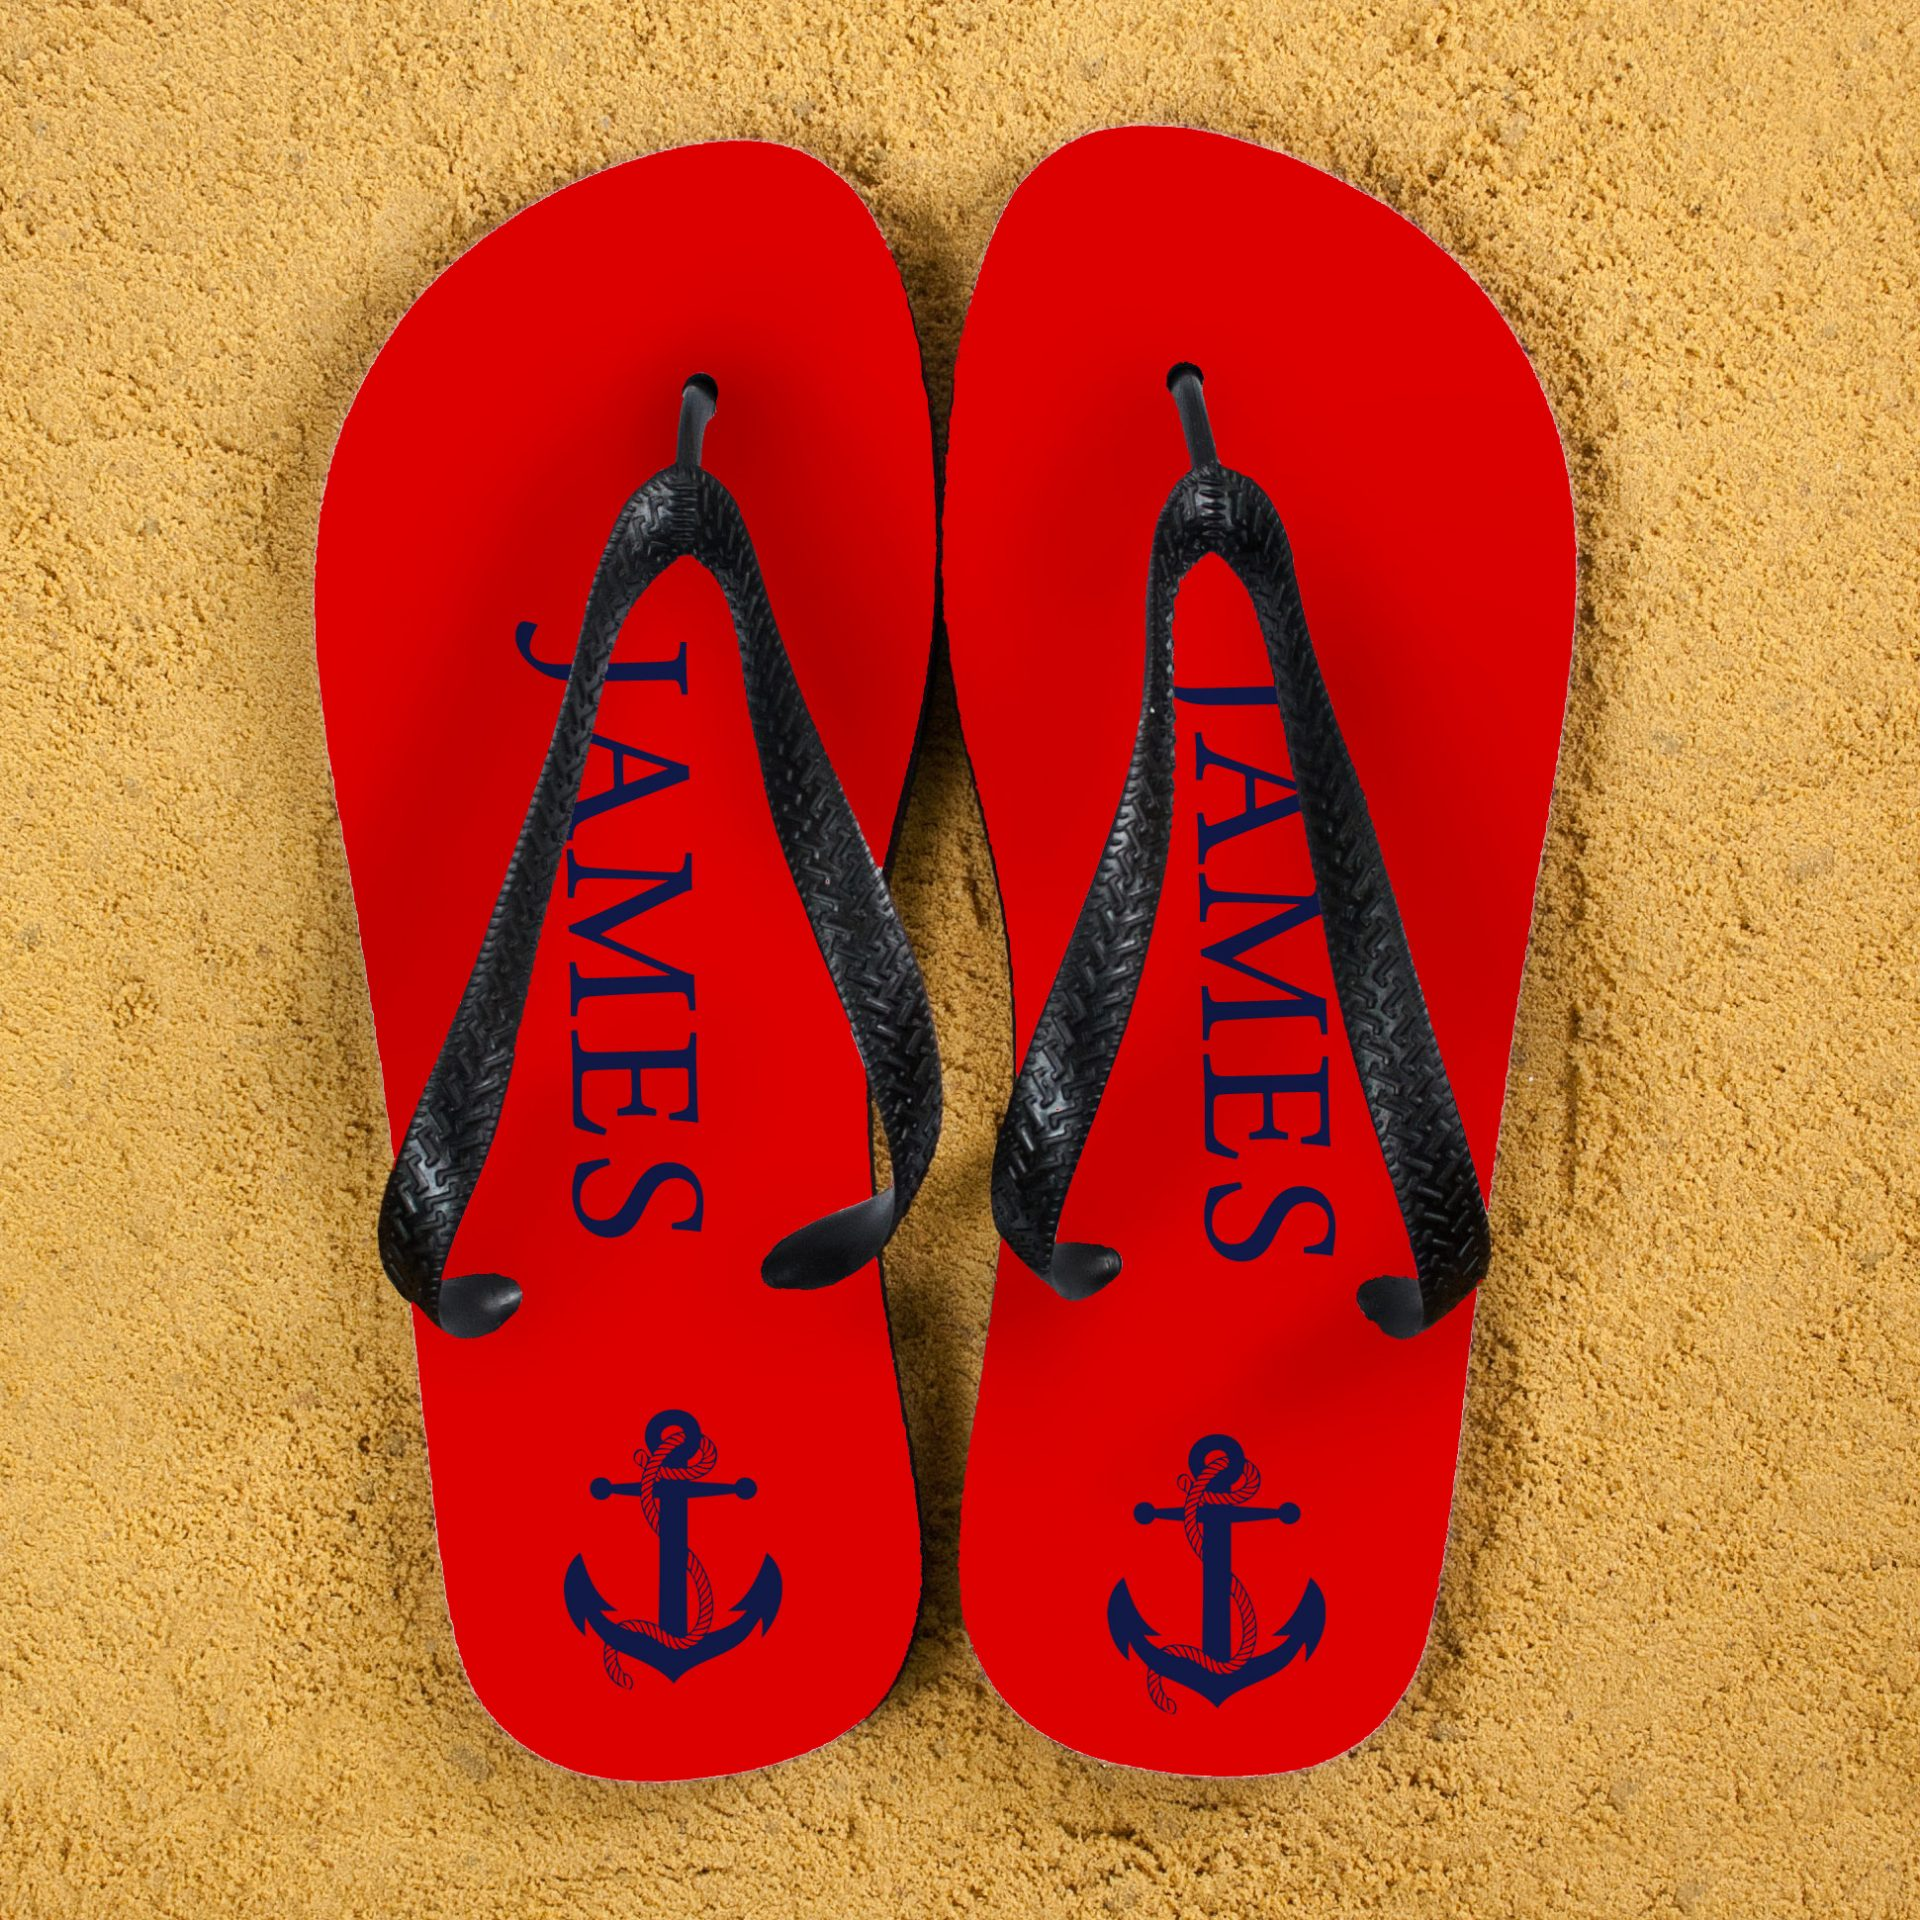 Anchor style Personalised Flip Flops in Red and Blue